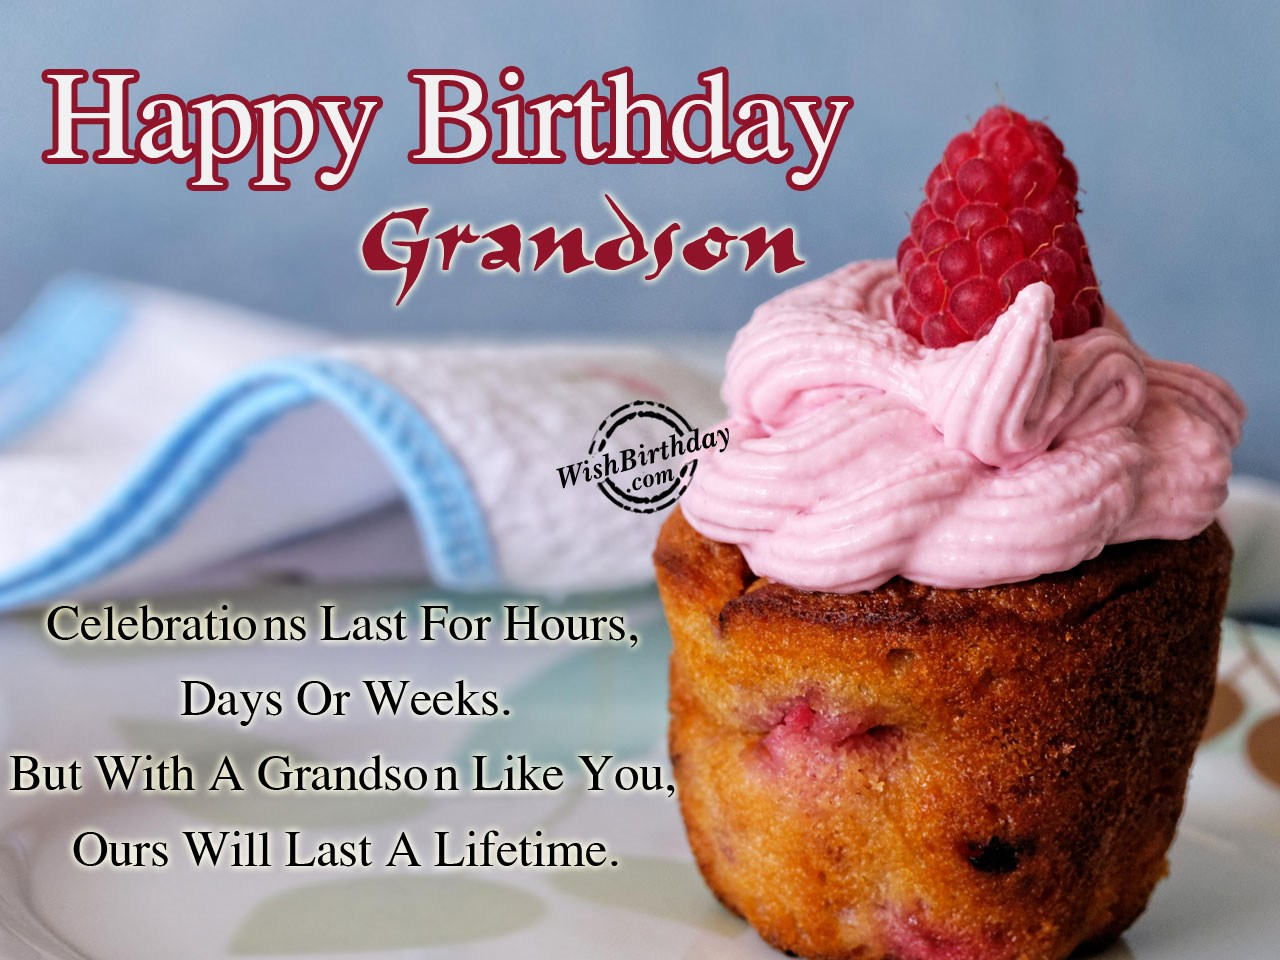 Birthday wishes for grandson birthday images pictures happy birthday my grandson m4hsunfo